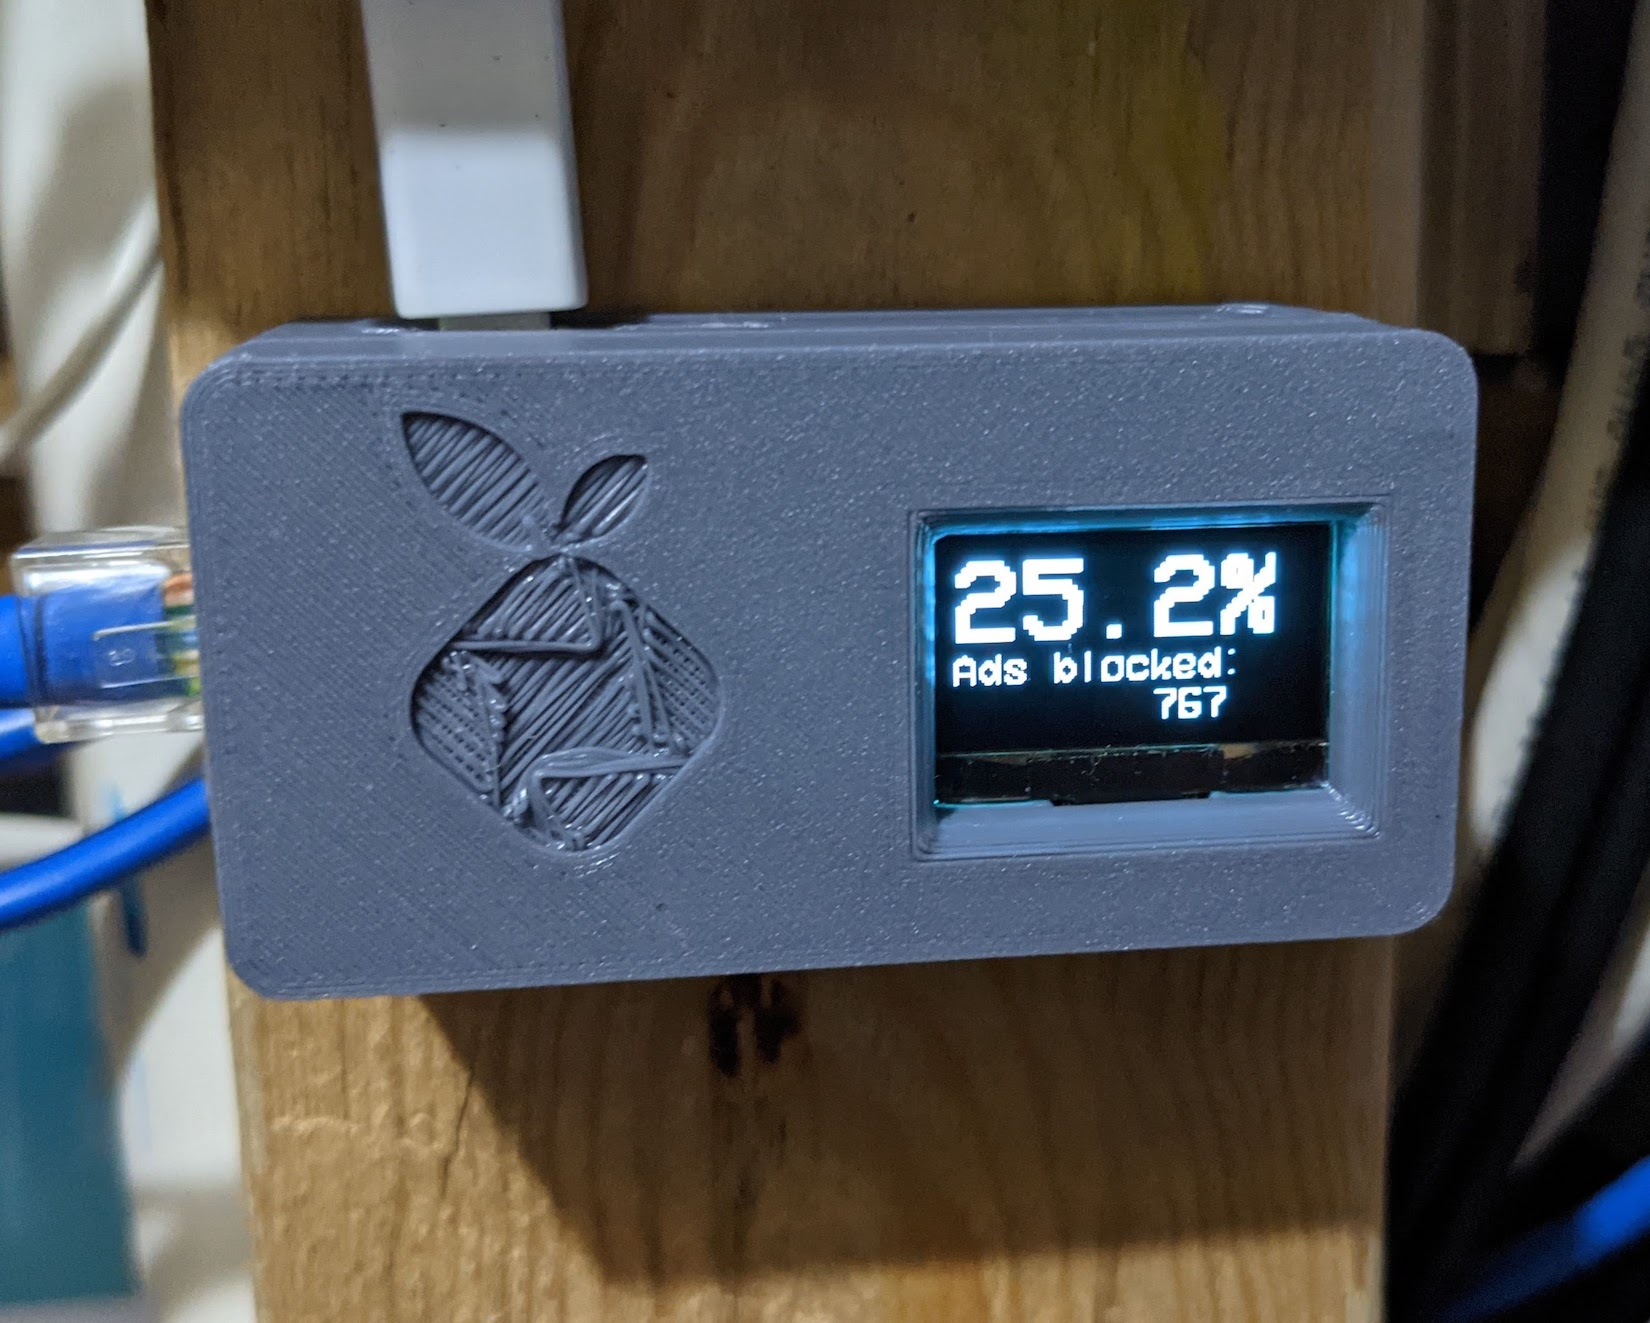 PiHole All in One Case with Pi Zero, Ethernet Adapter, and OLED Display